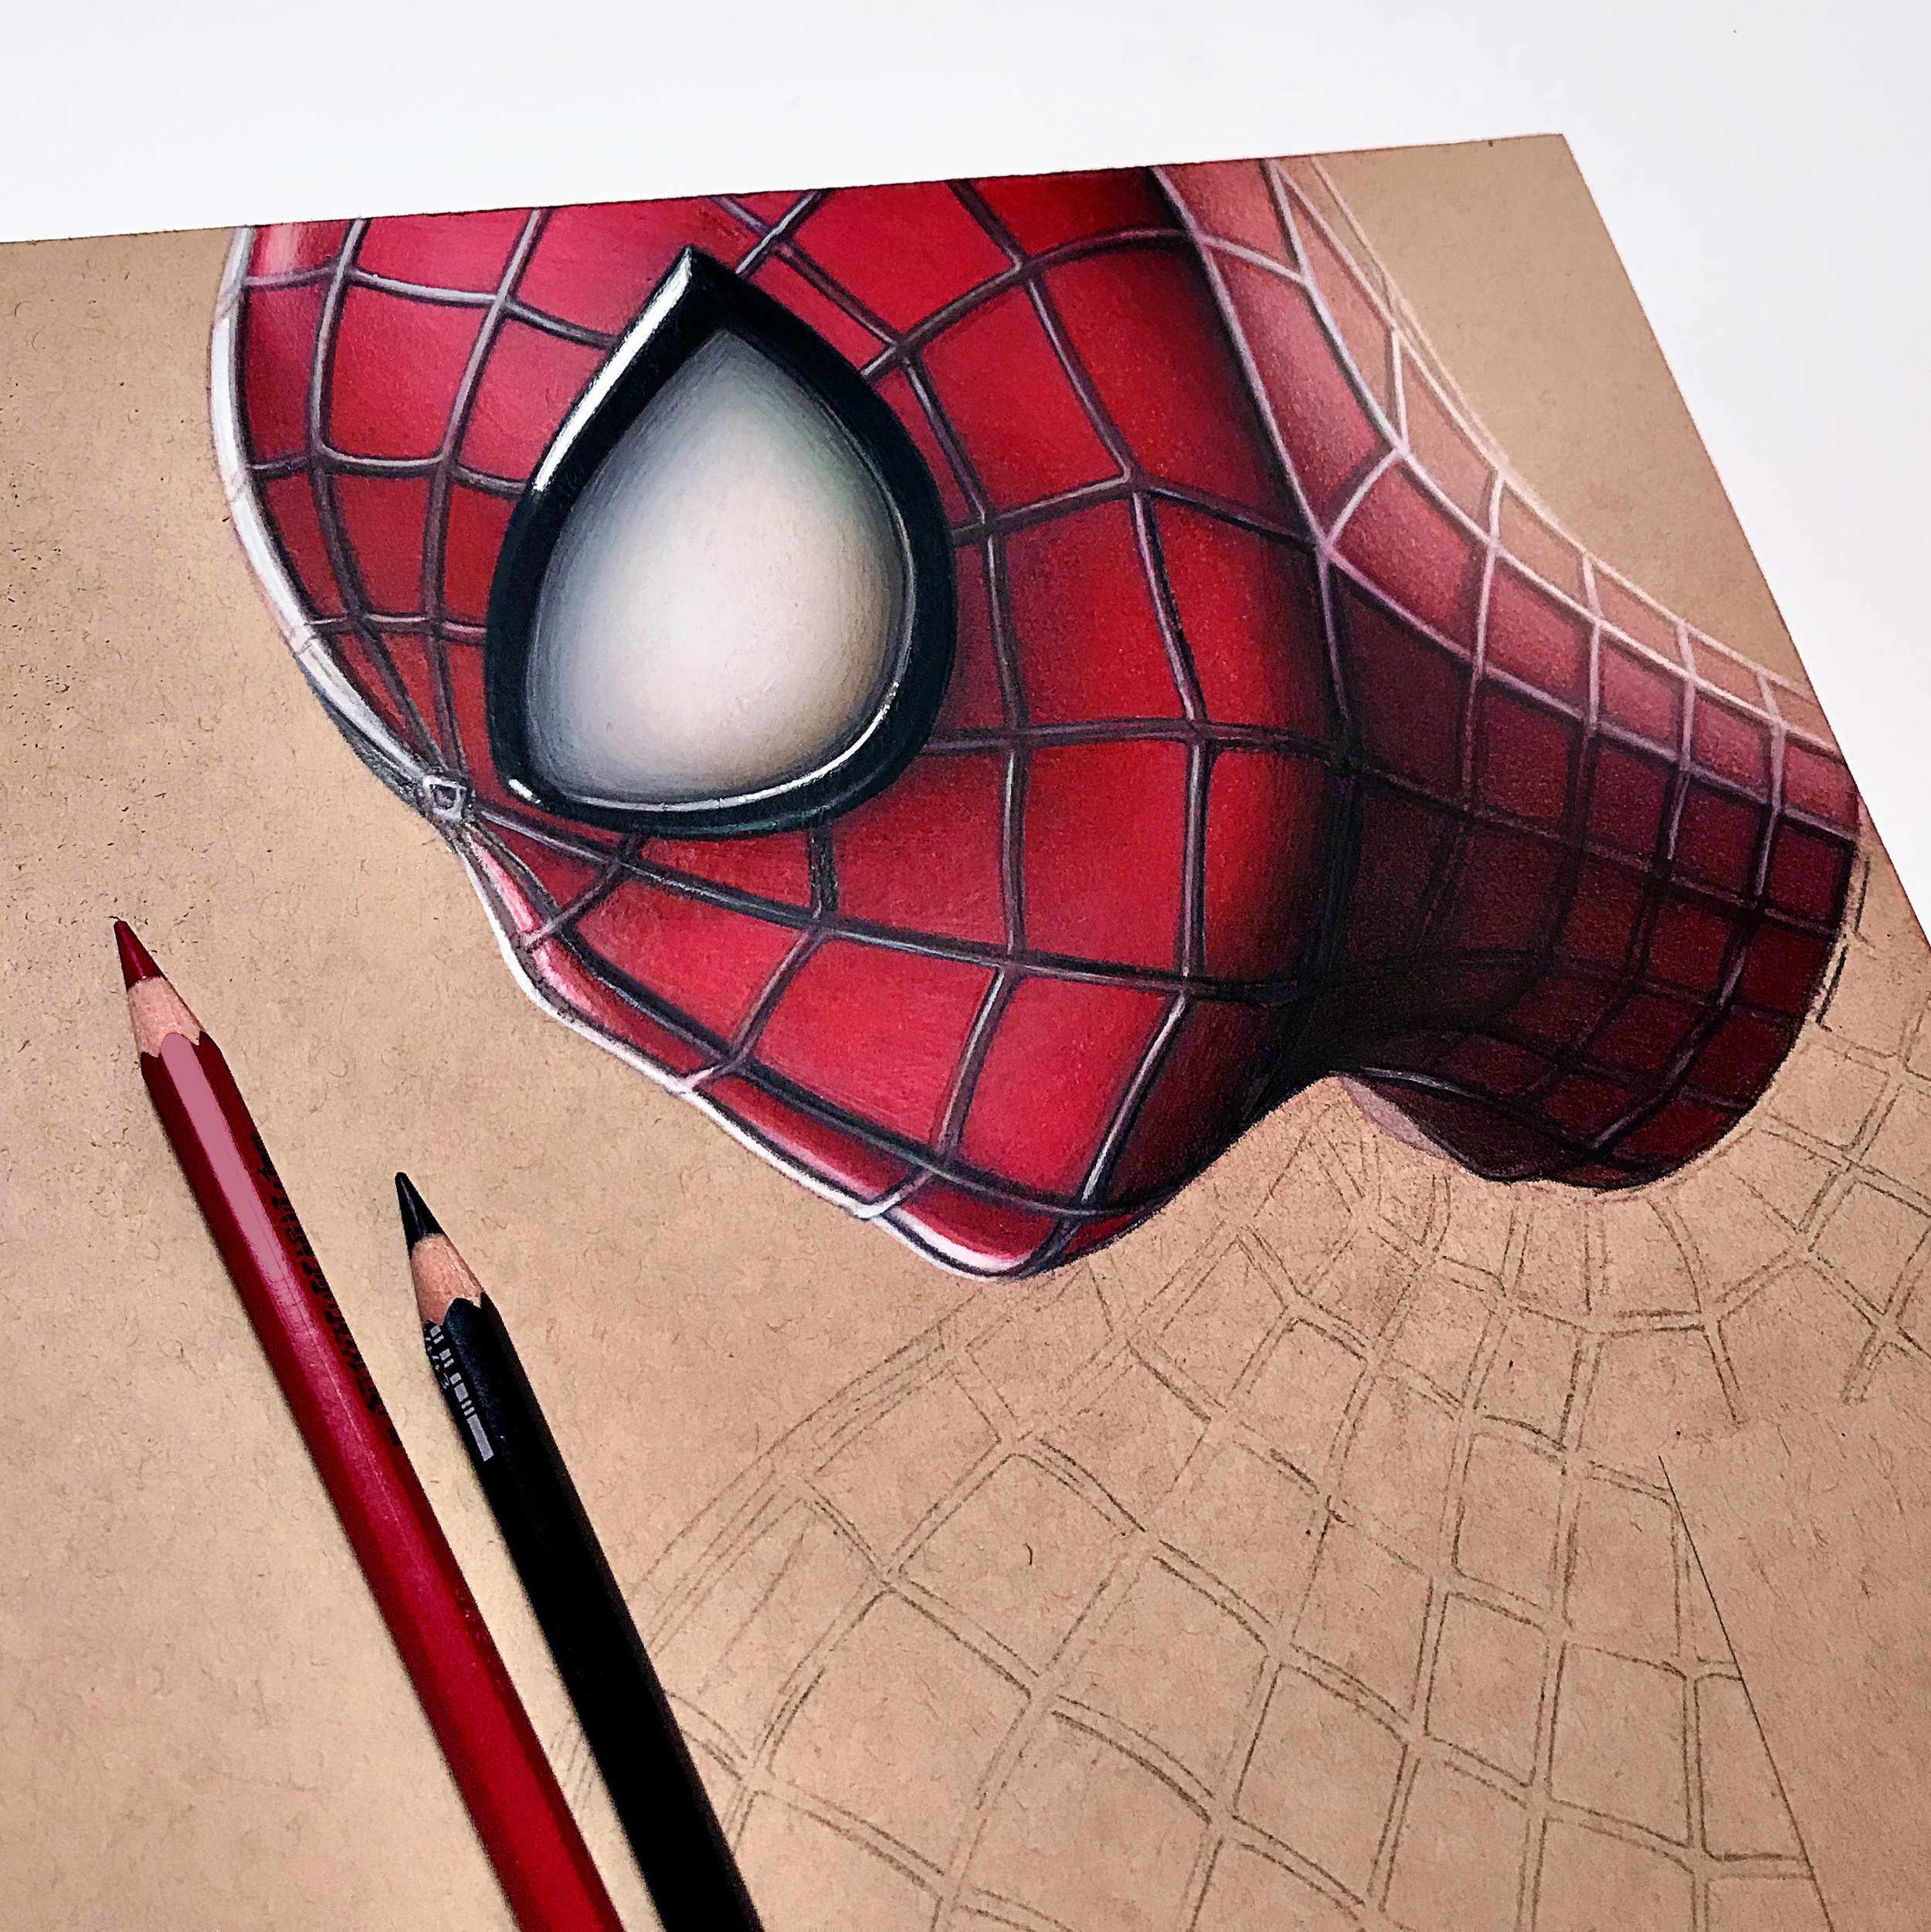 Next… - I started to add color to the portrait by starting with a base layer of red and then build up those shades of red by adding layers. When referencing my black/white version, I would add darker shades of red, brown, and black over top of areas that had deeper shadows to really add depth and give my drawing the Spidey look! For a more in depth look of how I completed this drawing from start to finish, check out the full video time lapse down below.